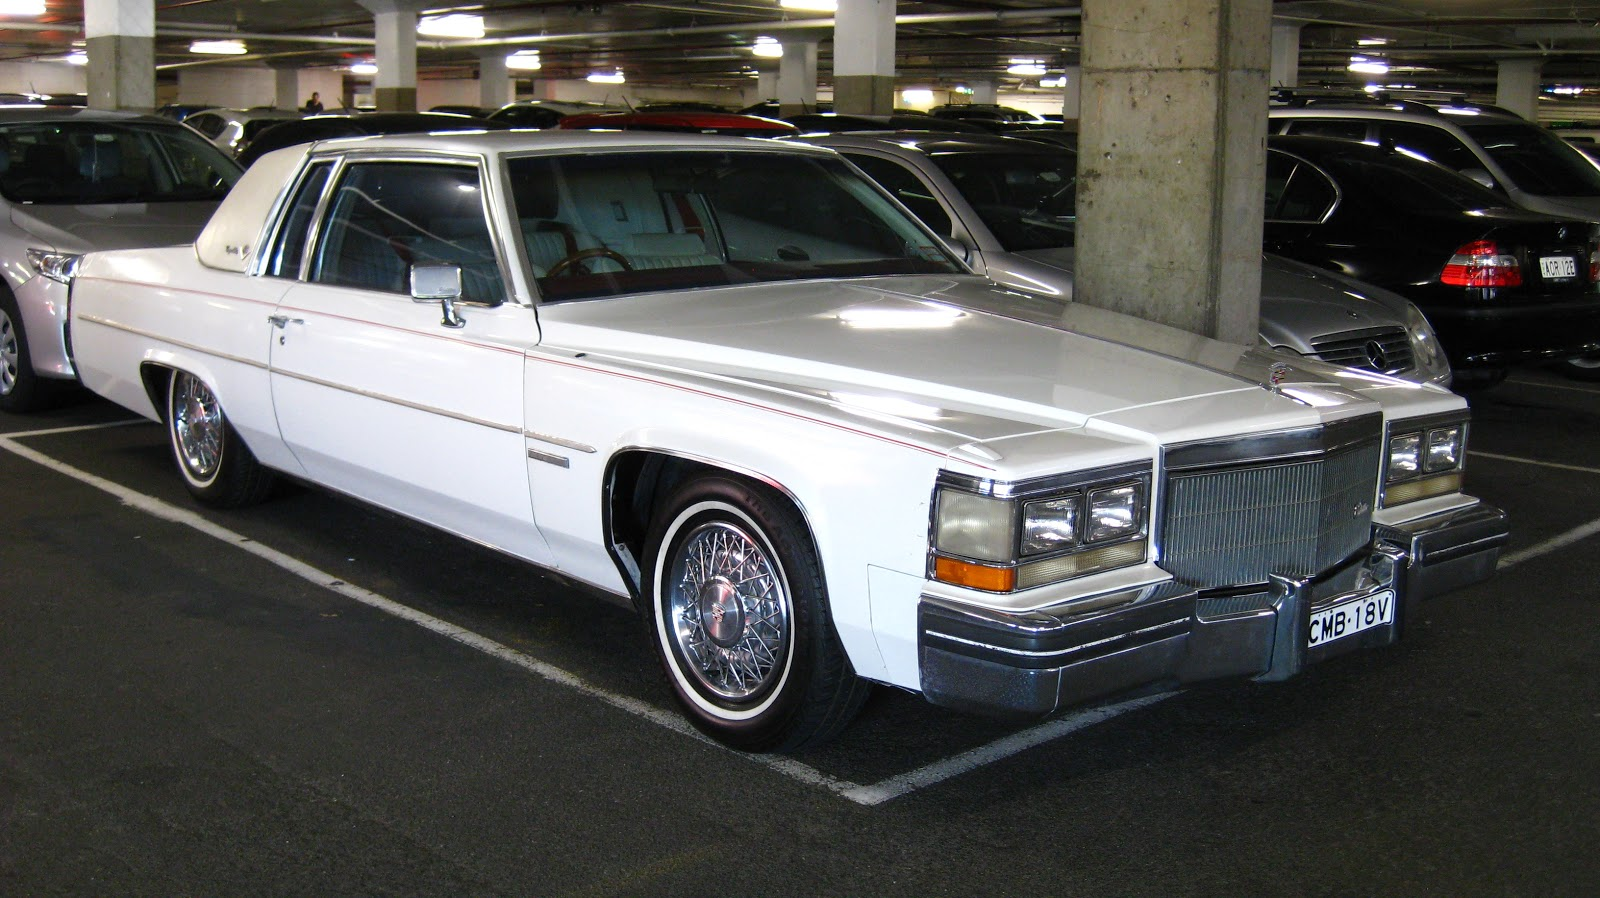 Aussie Old Parked Cars 1983 Cadillac Coupe Deville Ht 4100